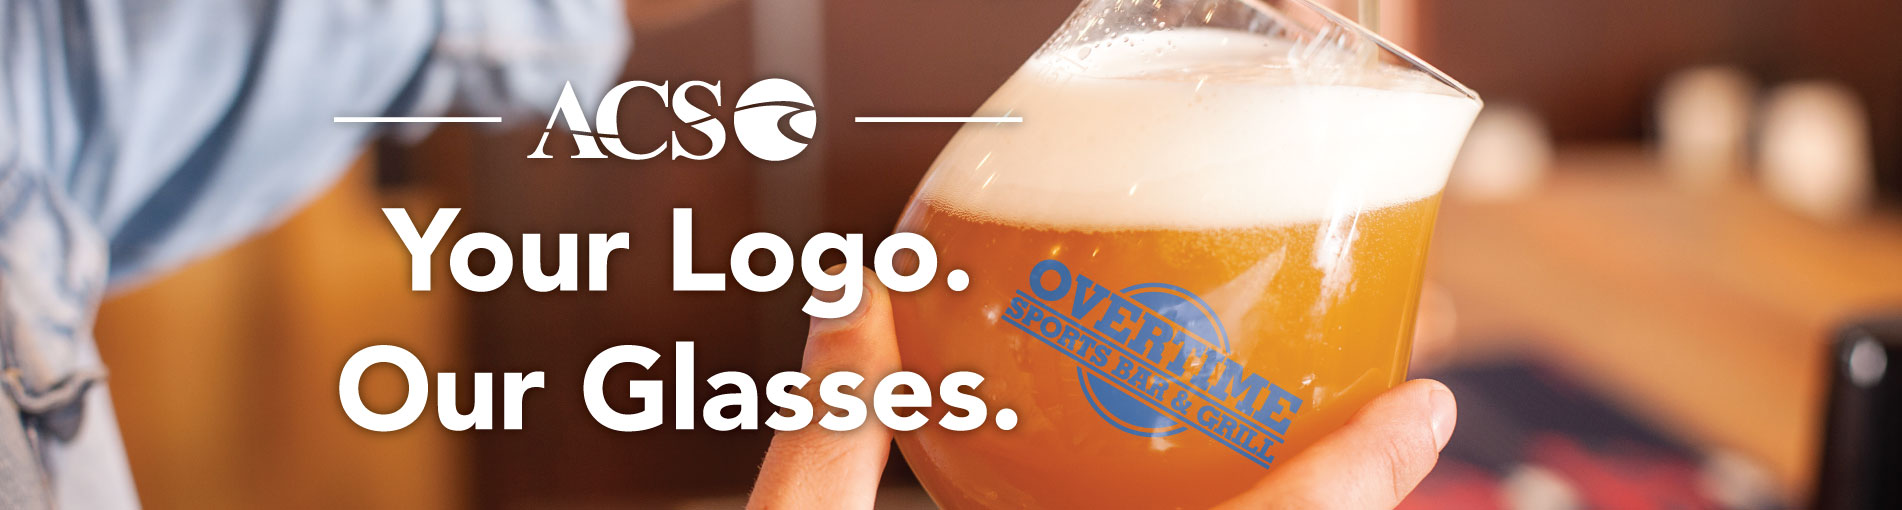 Your Logo. Our Glasses.